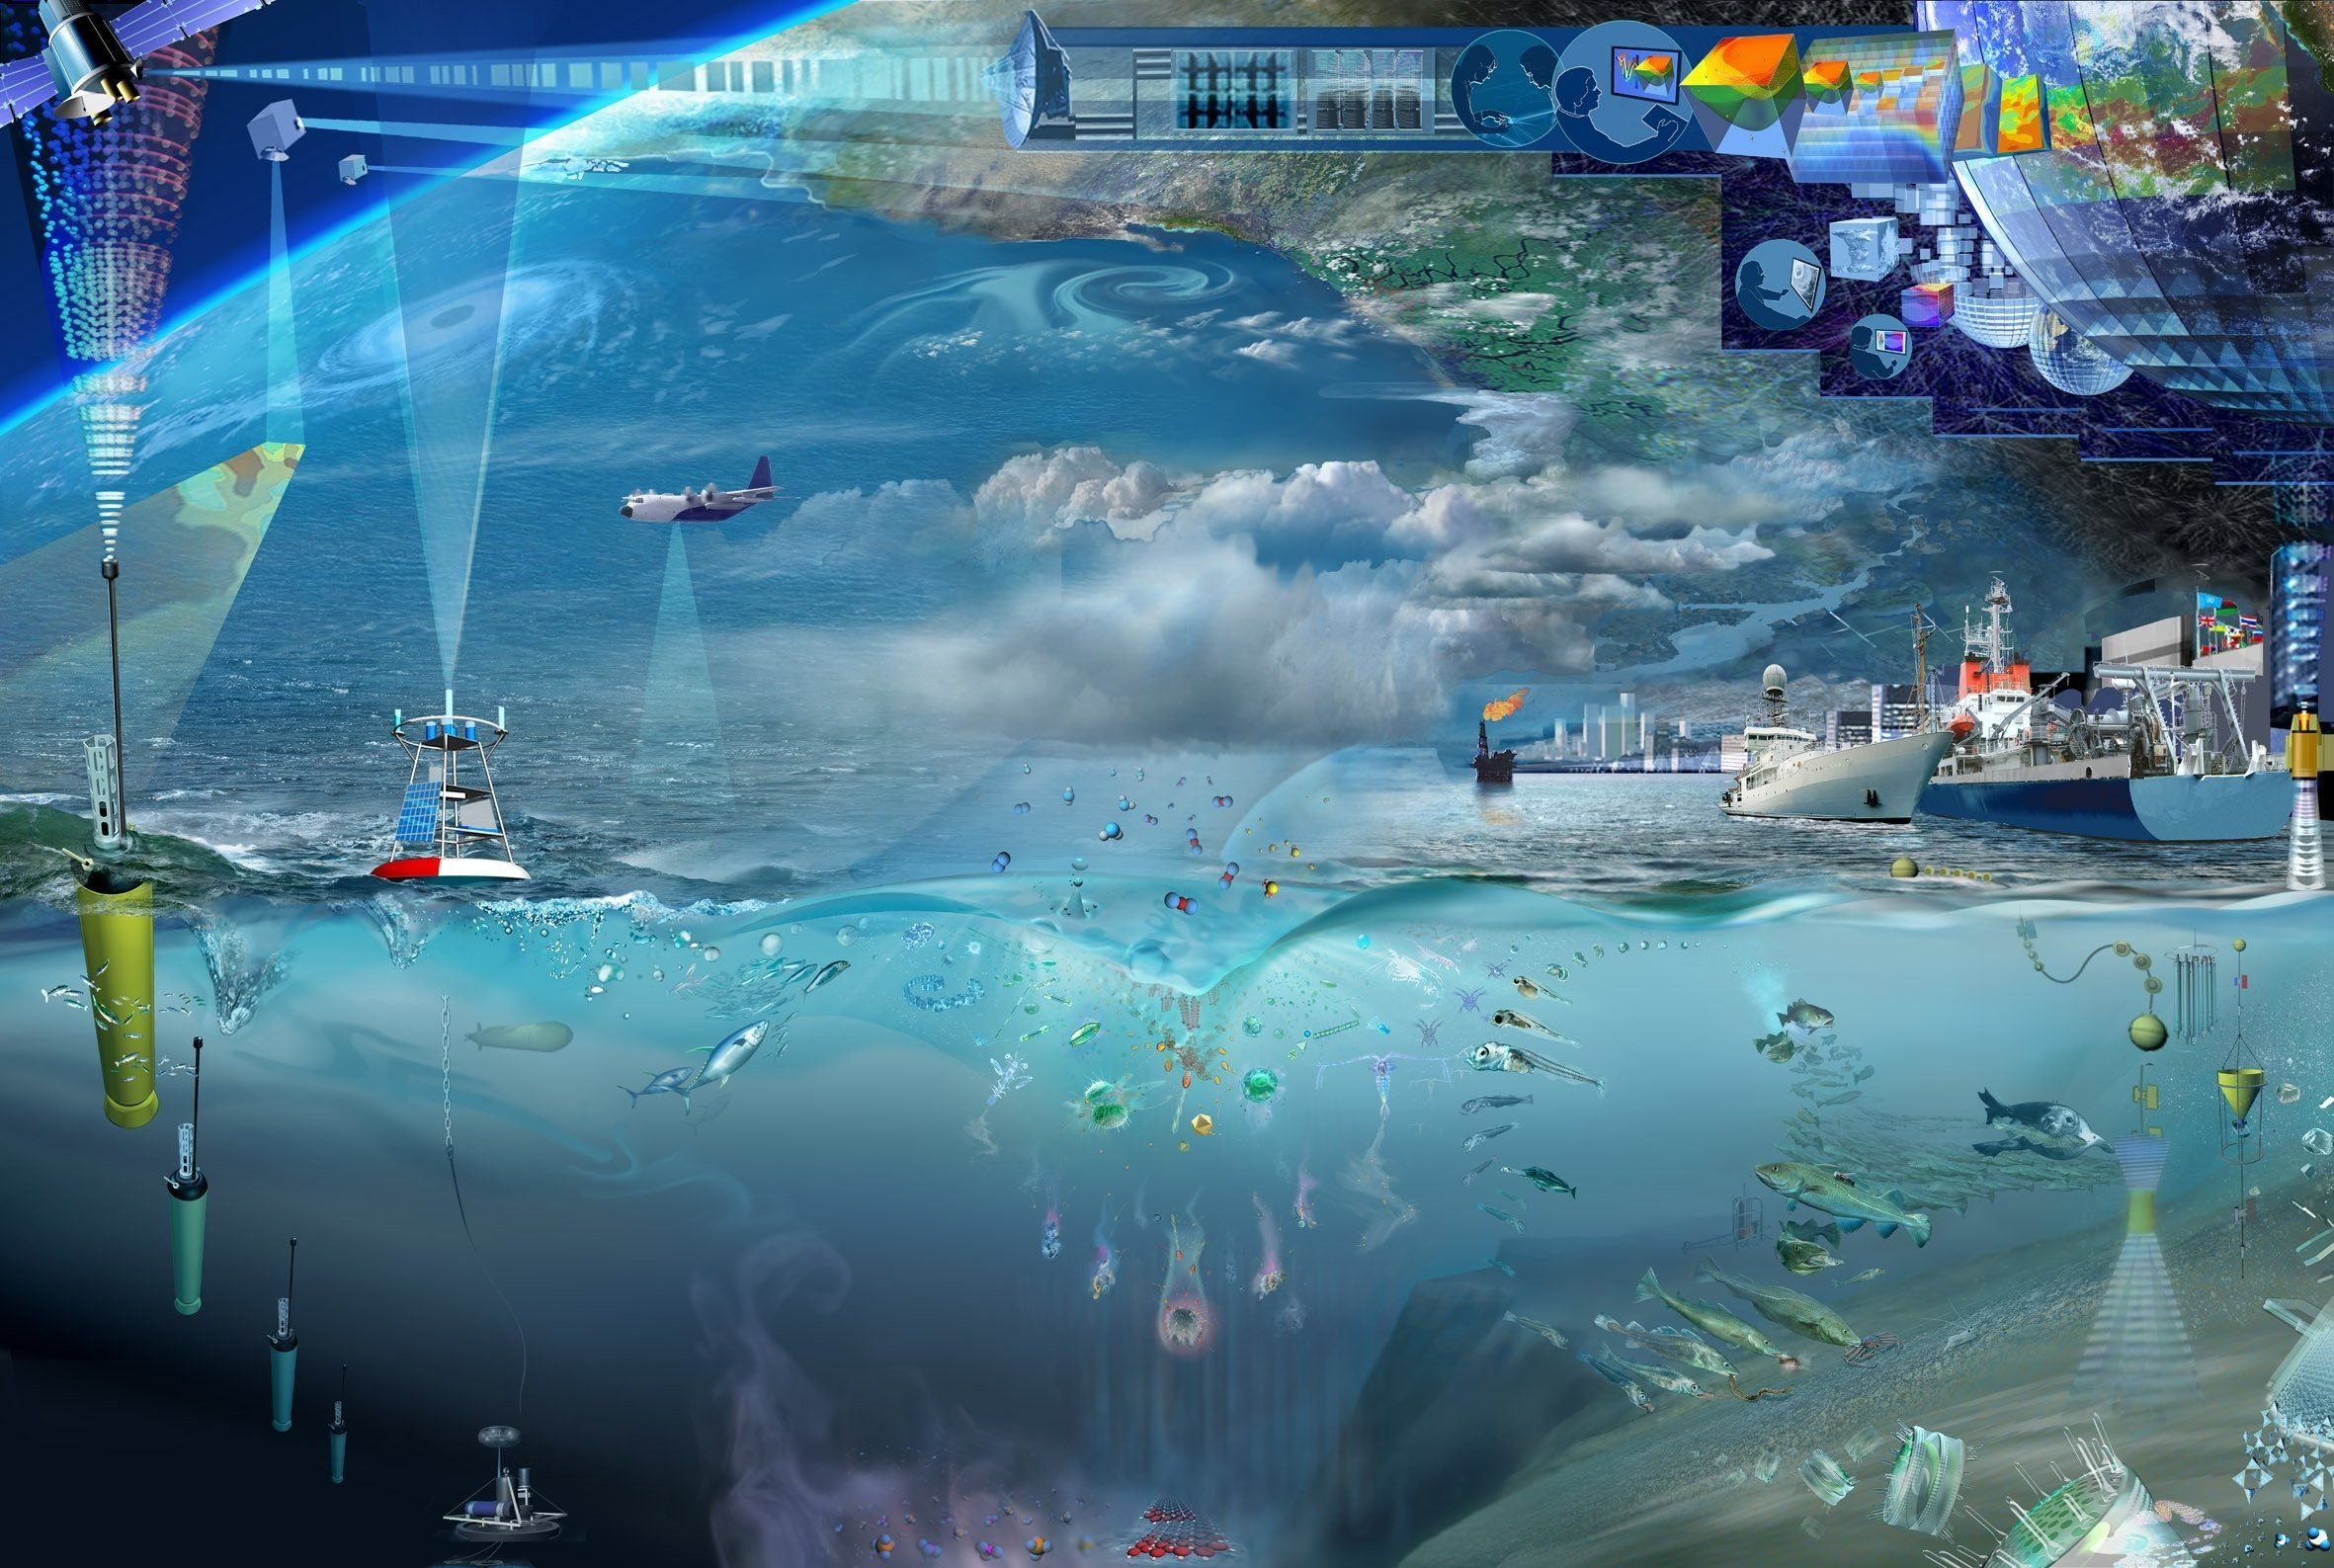 An illustration of the components of the Global Ocean Observing System. The national system is modeled on a similar framework.